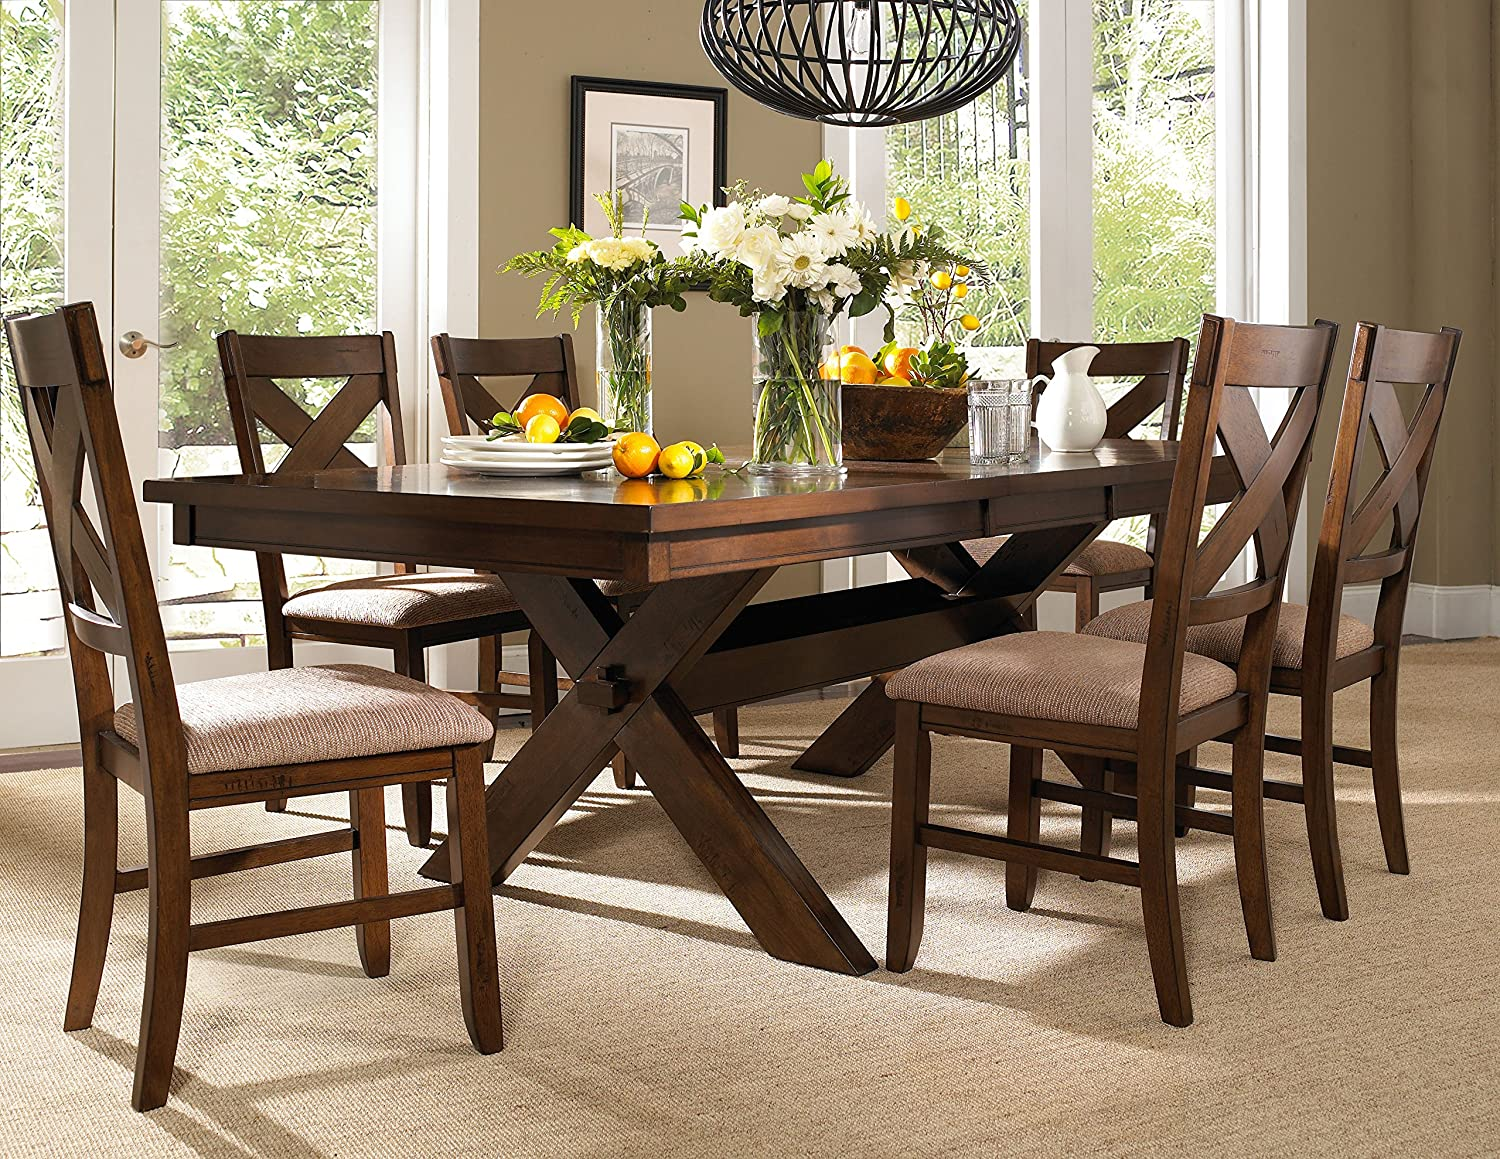 Amazon com powell 713 417m2 7 piece wooden kraven dining set table chair sets